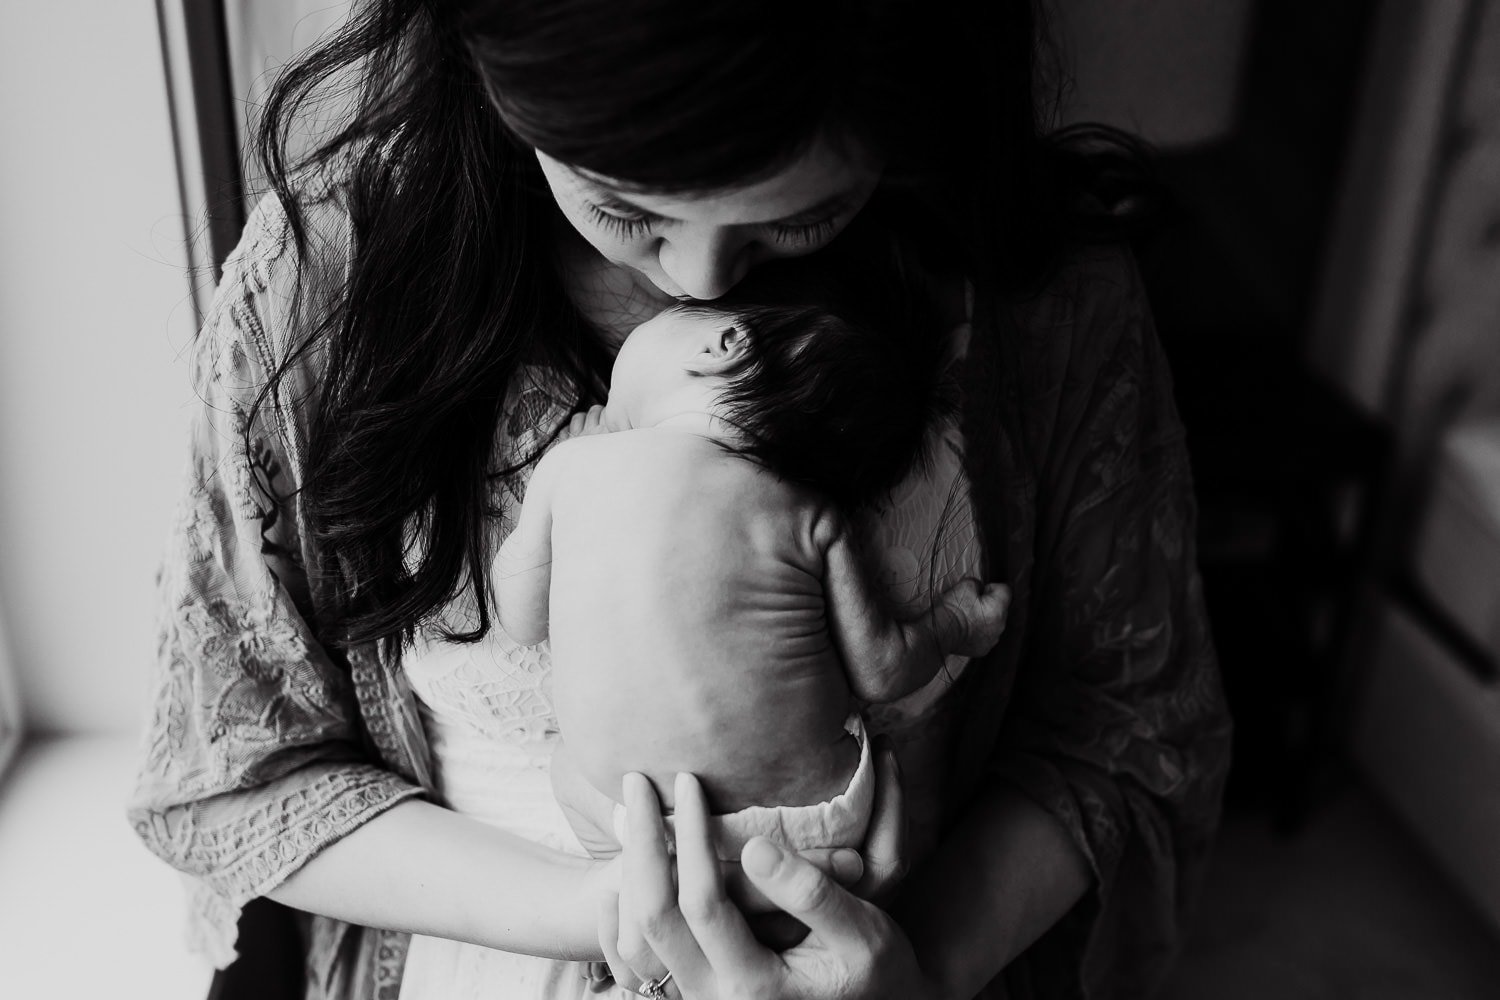 black and white photo of mom kissing her newborn baby by a window   starting a family photography business from scratch